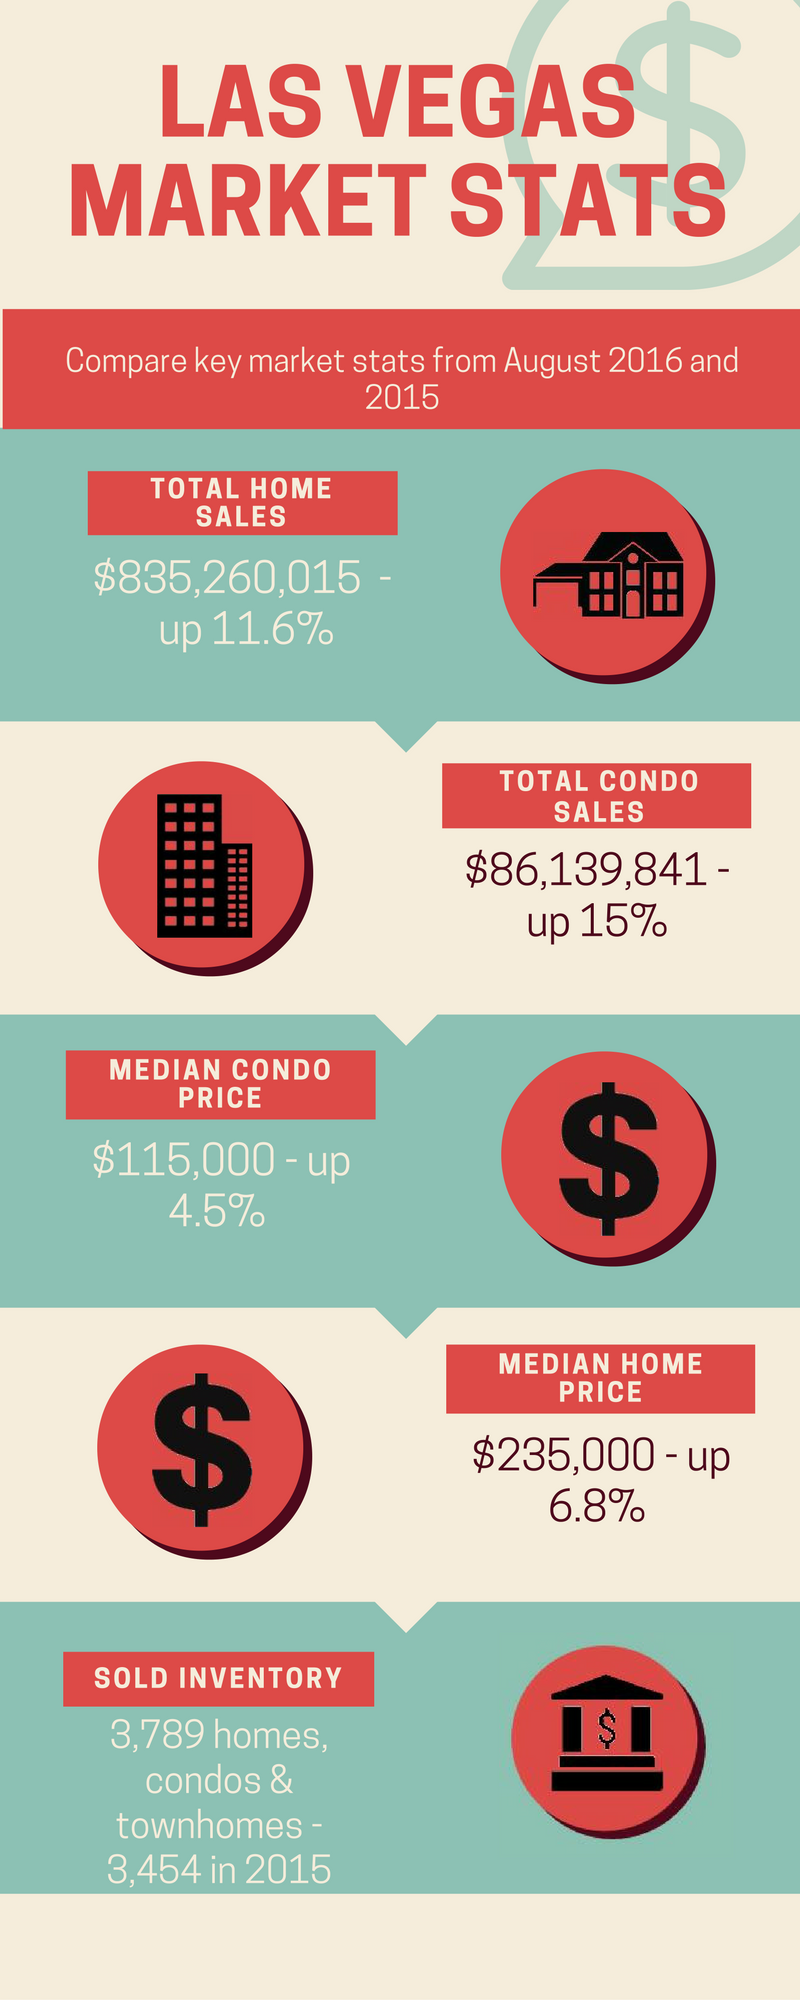 Las Vegas - Key Market Stats for August 2016